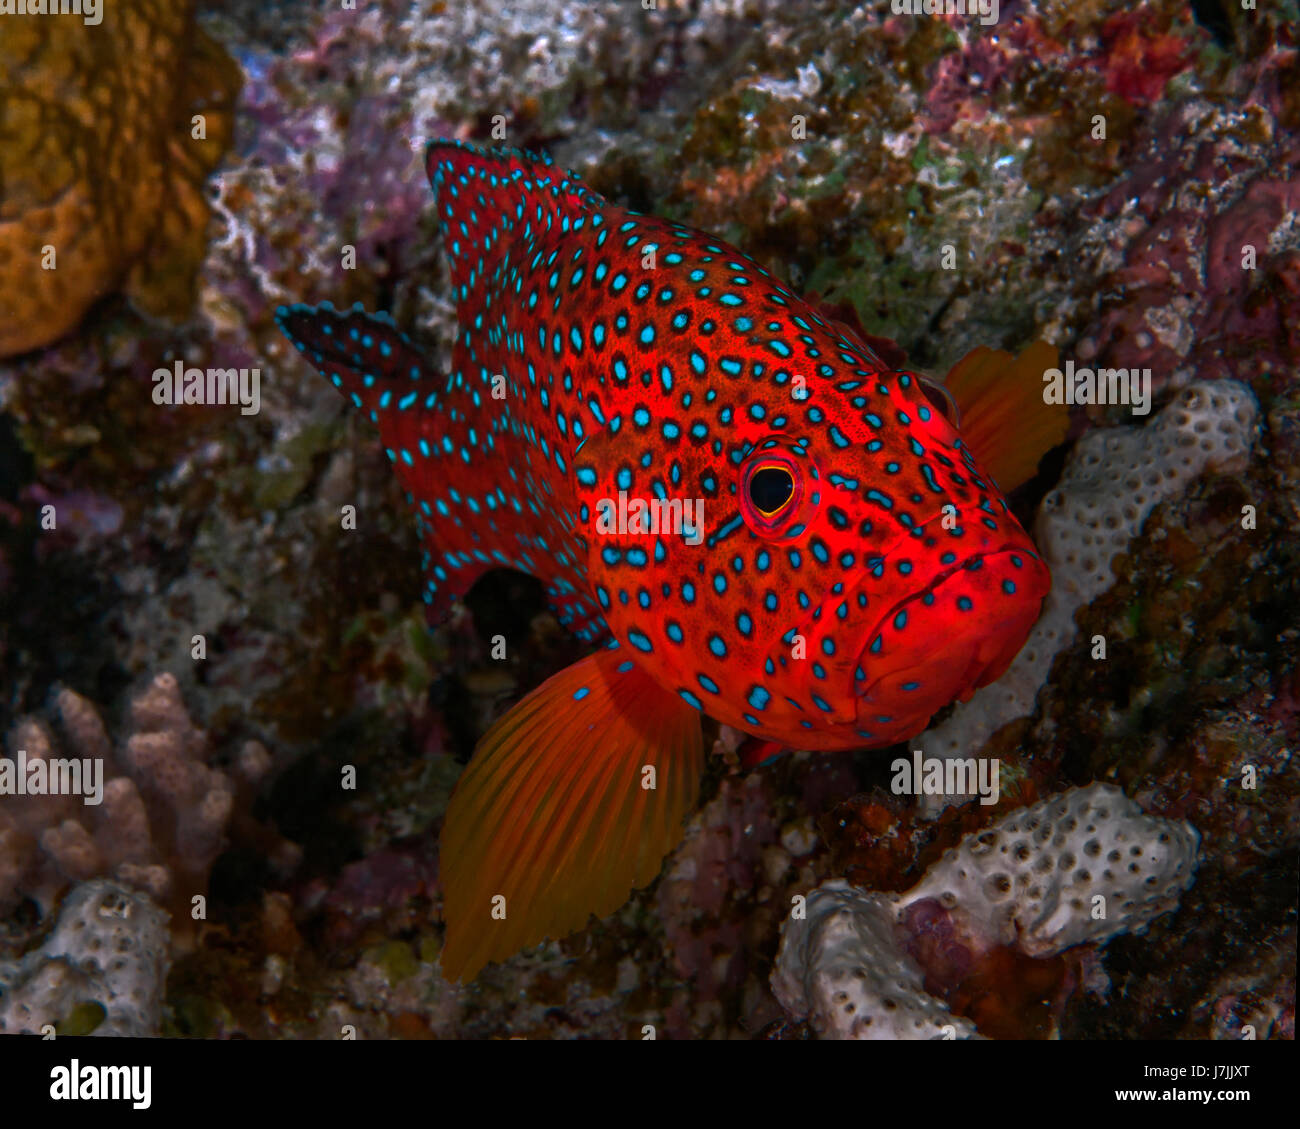 Bluespotted grouper peers from its lair in the coral reef. - Stock Image